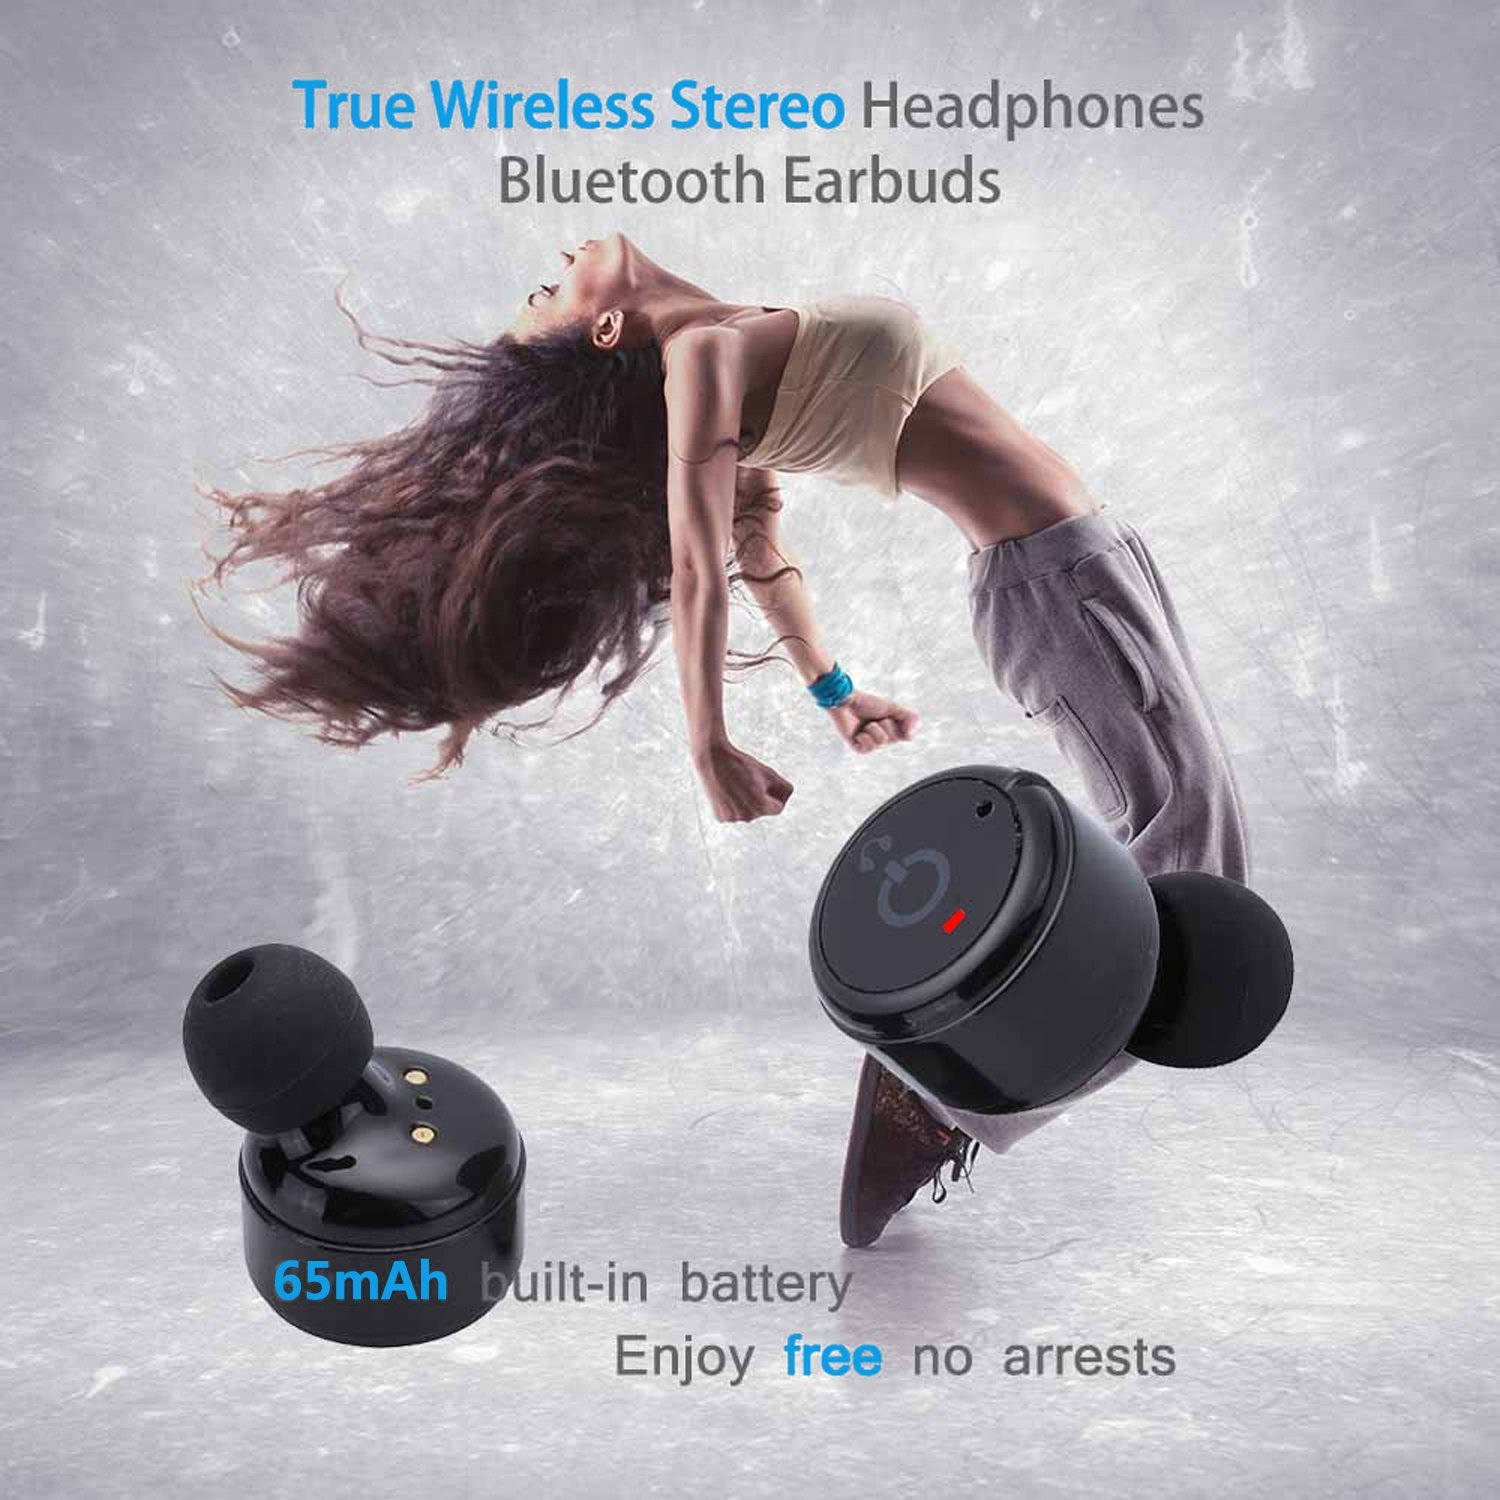 Wireless Earbuds In Ear Bluetooth 4 2 Headphones Mini Headsets Noise Cancelling Invisible Stereo Earphones Mic Phone Android in Bluetooth Earphones Headphones from Consumer Electronics